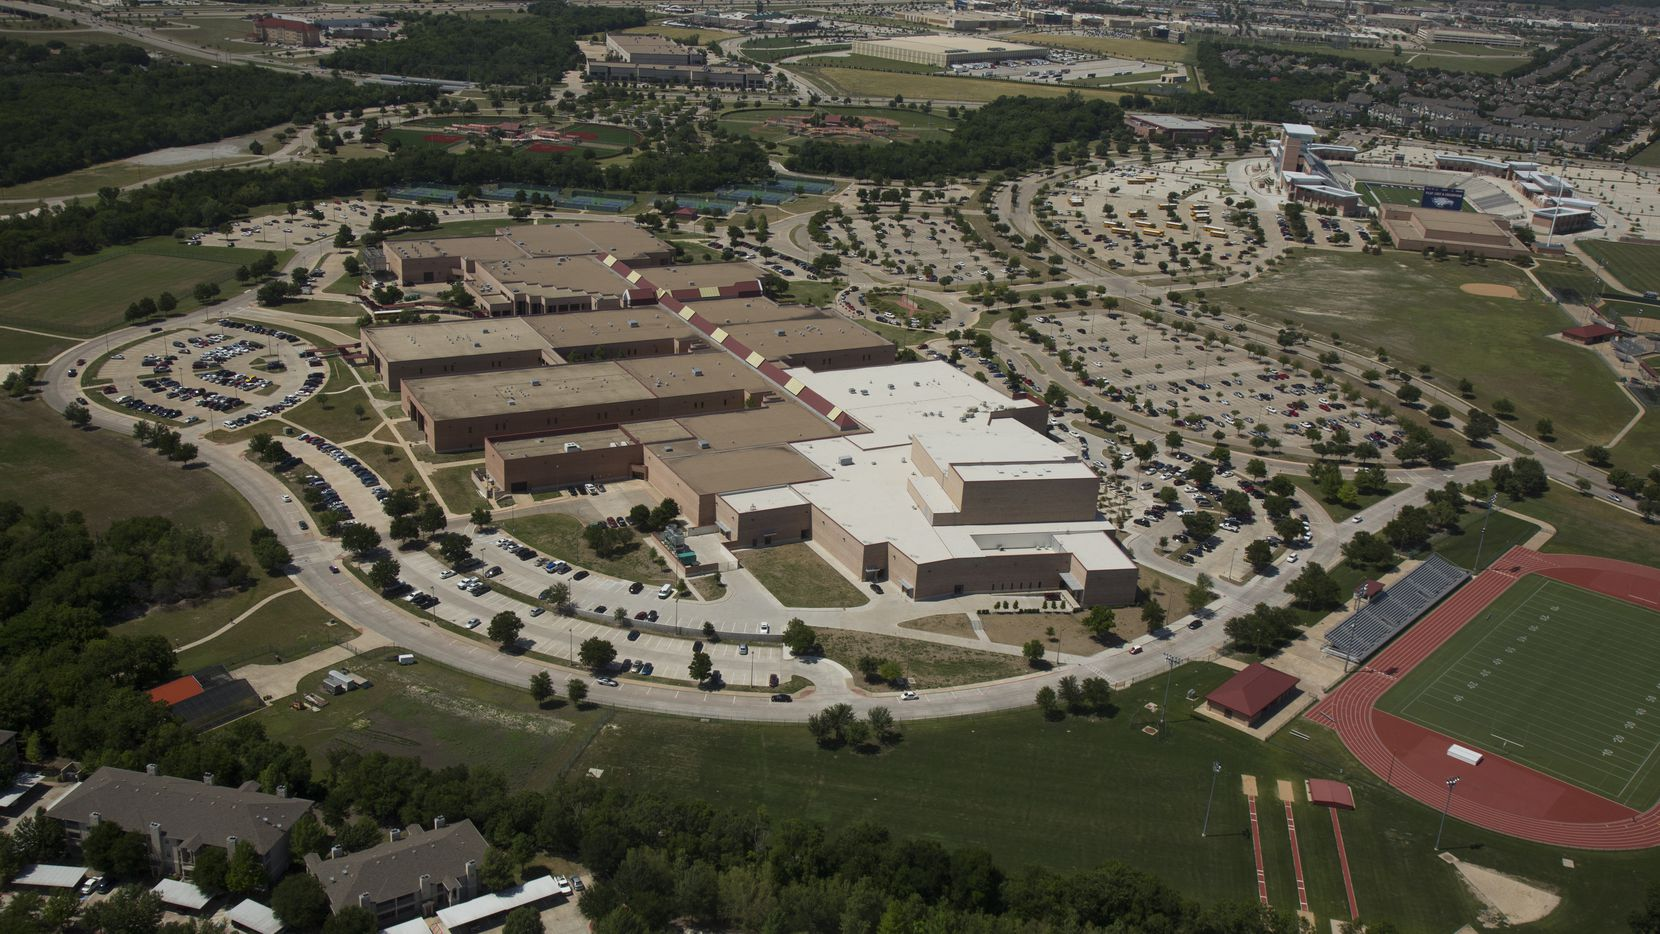 Allen High School reports the most active COVID-19 cases at 15.